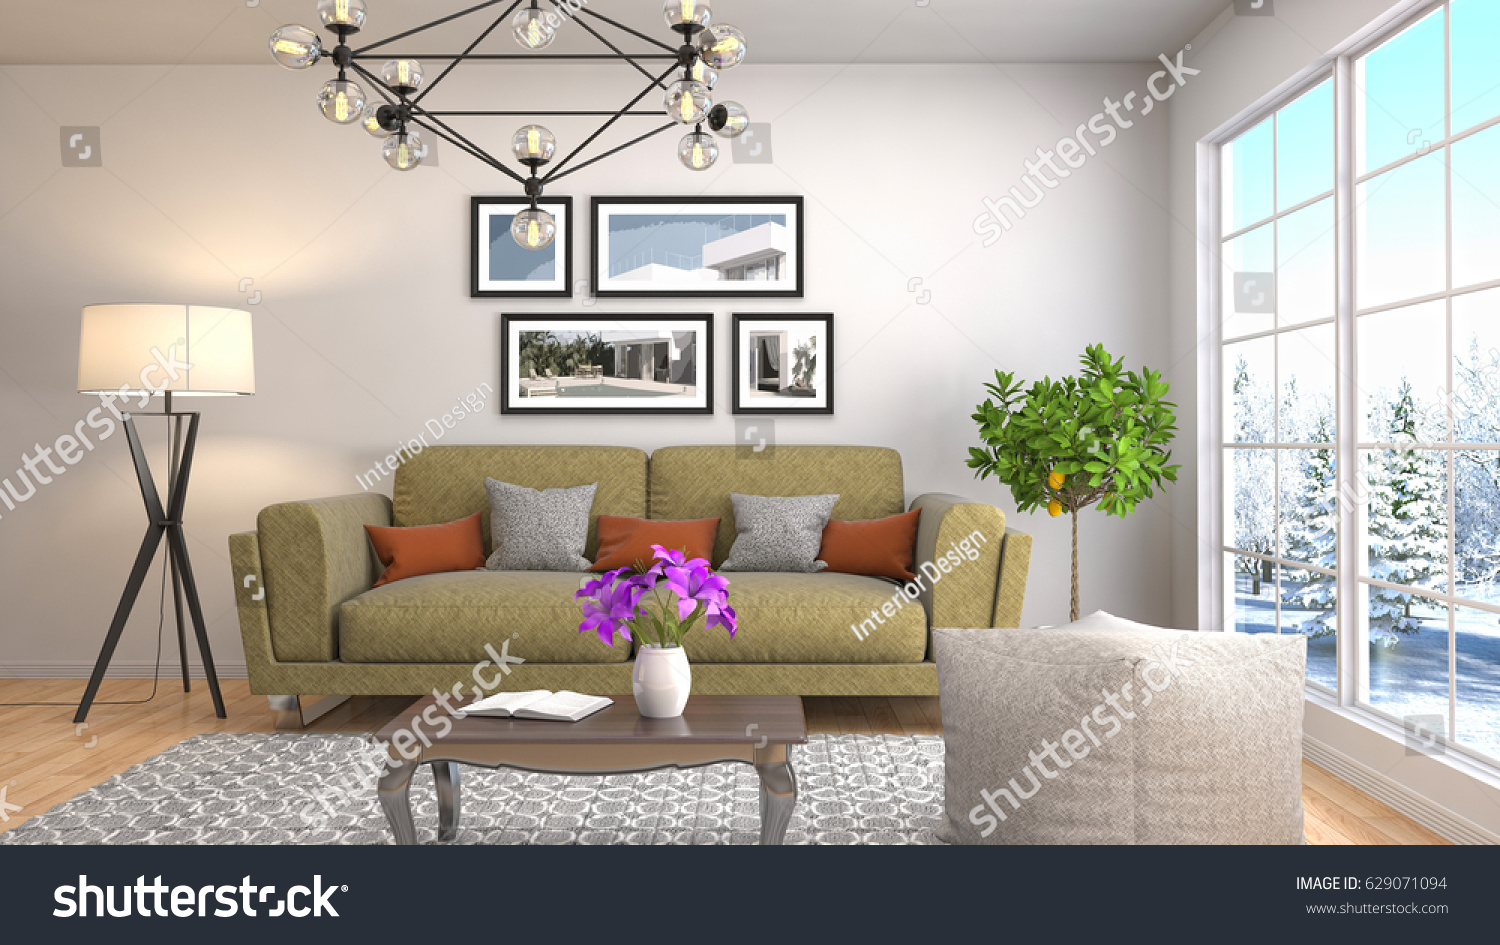 Interior living room. 3d illustration #629071094